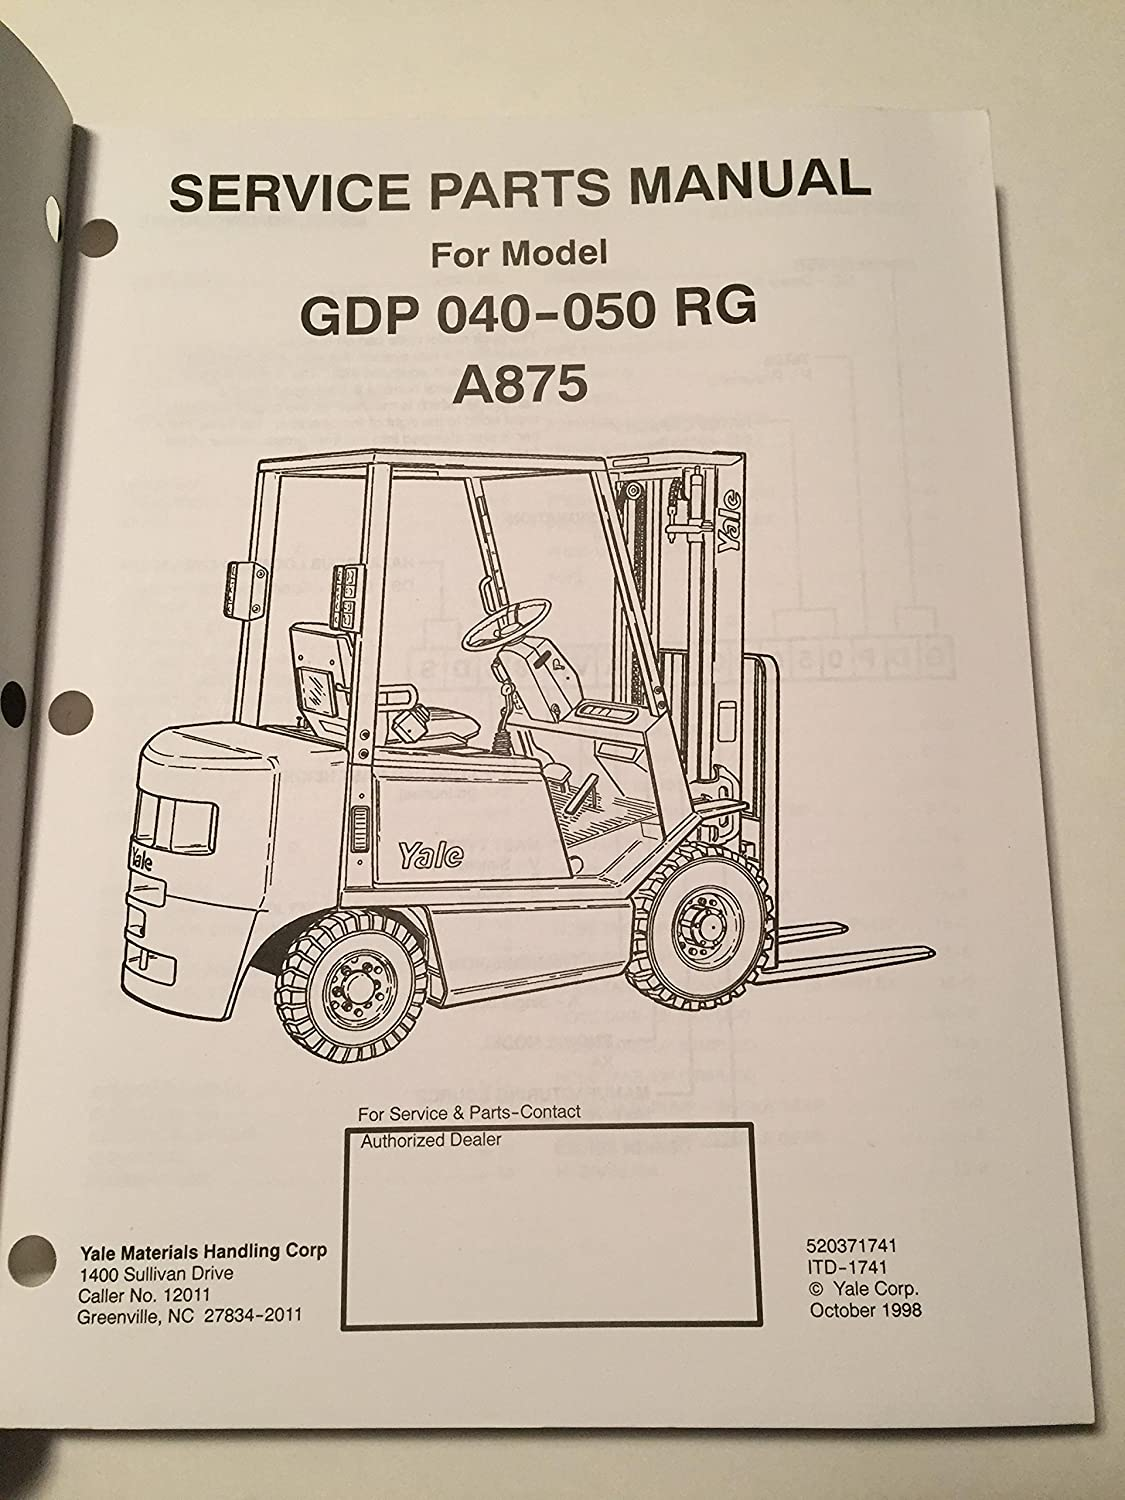 Yale Fork Truck GDP 040 050 RG A875 Service Parts Manual 4000 5000 pound  capacity Lift truck PIT Book: Amazon.com: Industrial & Scientific